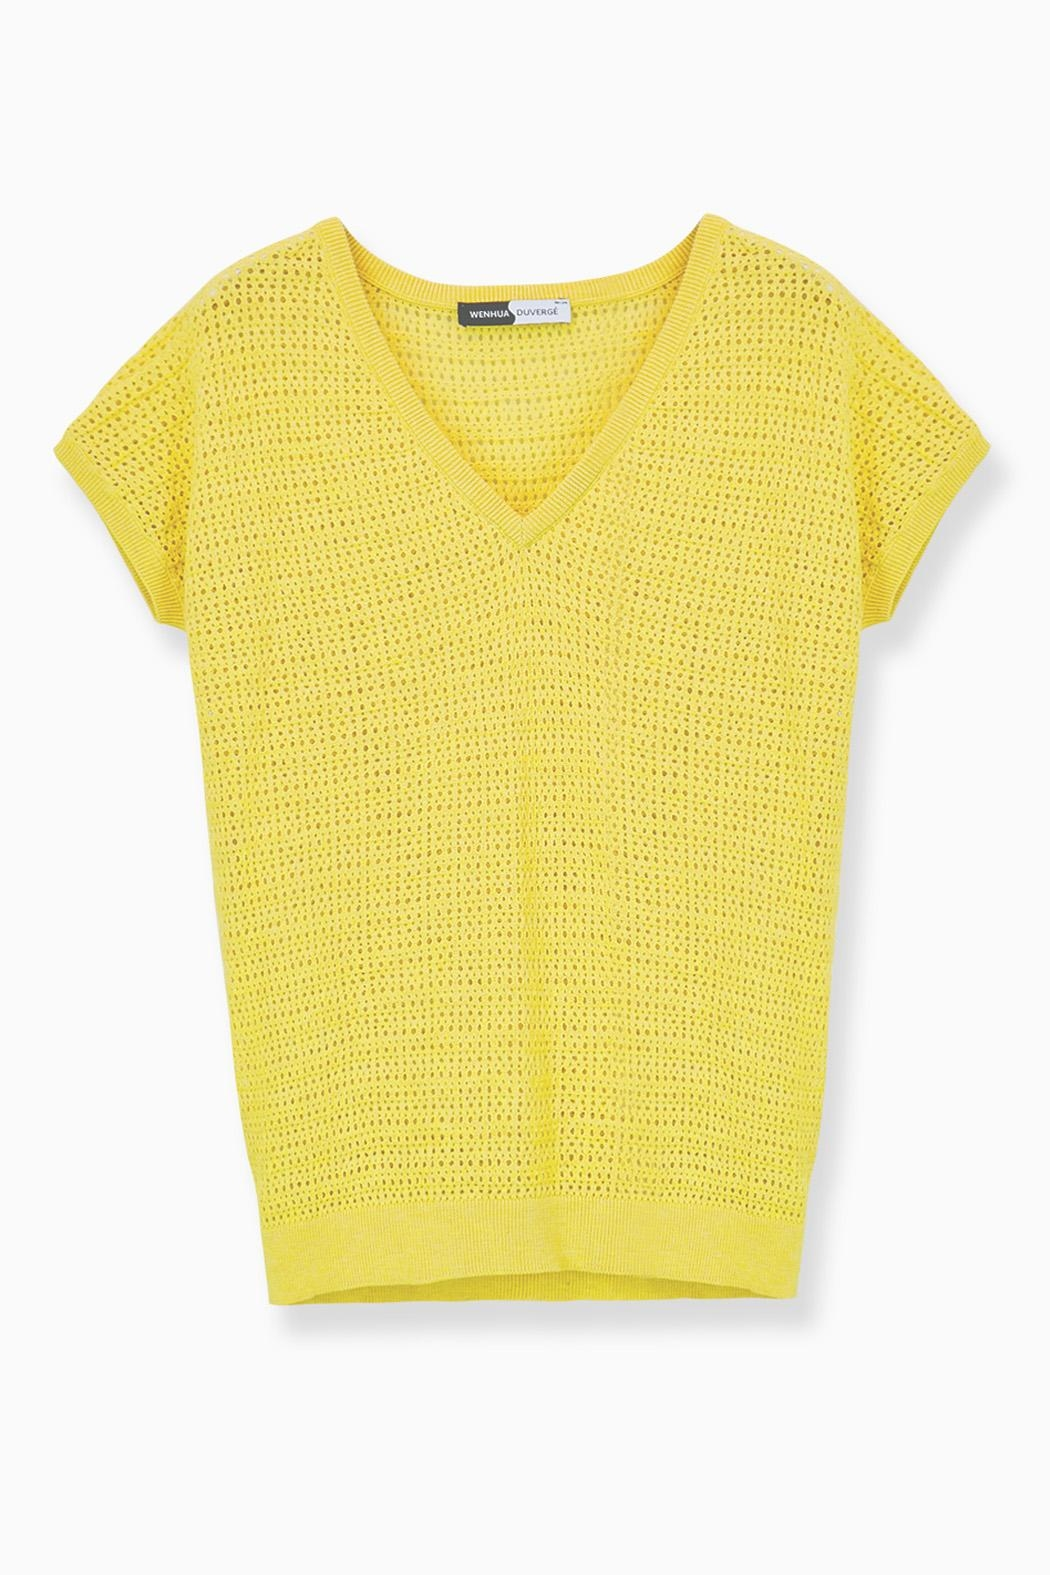 WENHUA DUVERGÉ Yellow Organic Cotton Sweater - Back Cropped Image